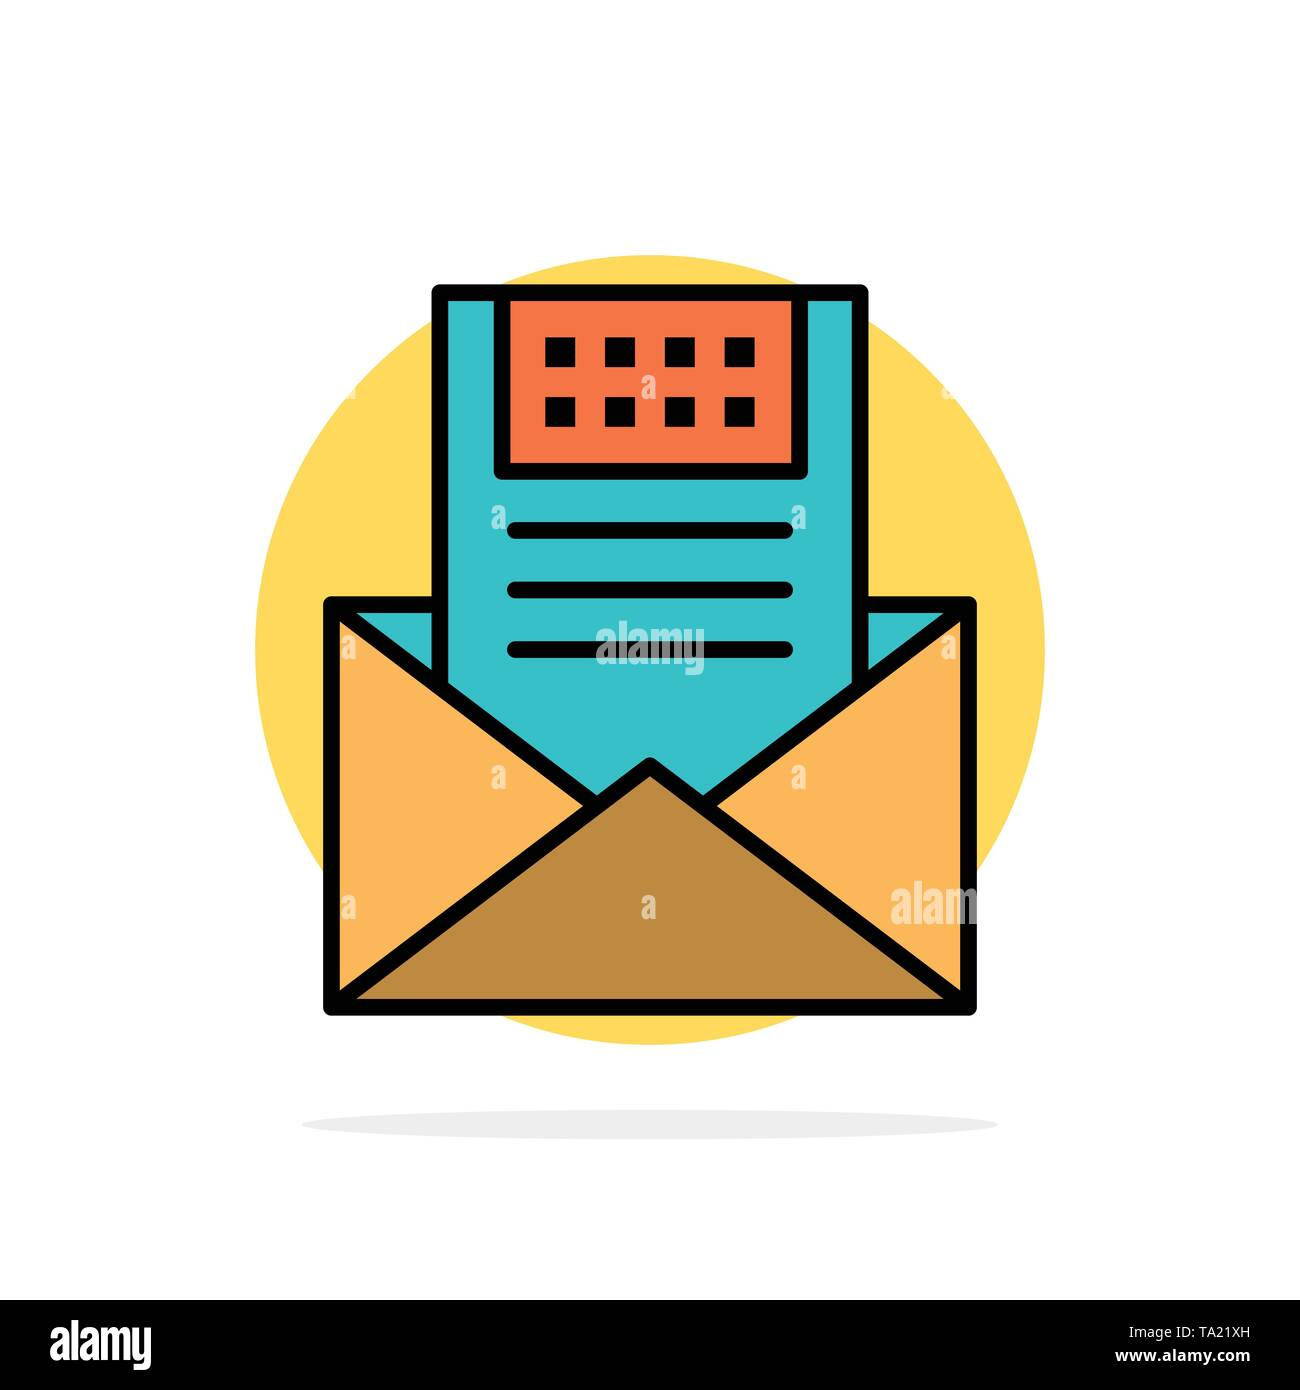 Email, Communication, Emails, Envelope, Letter, Mail, Message Abstract Circle Background Flat color Icon - Stock Image